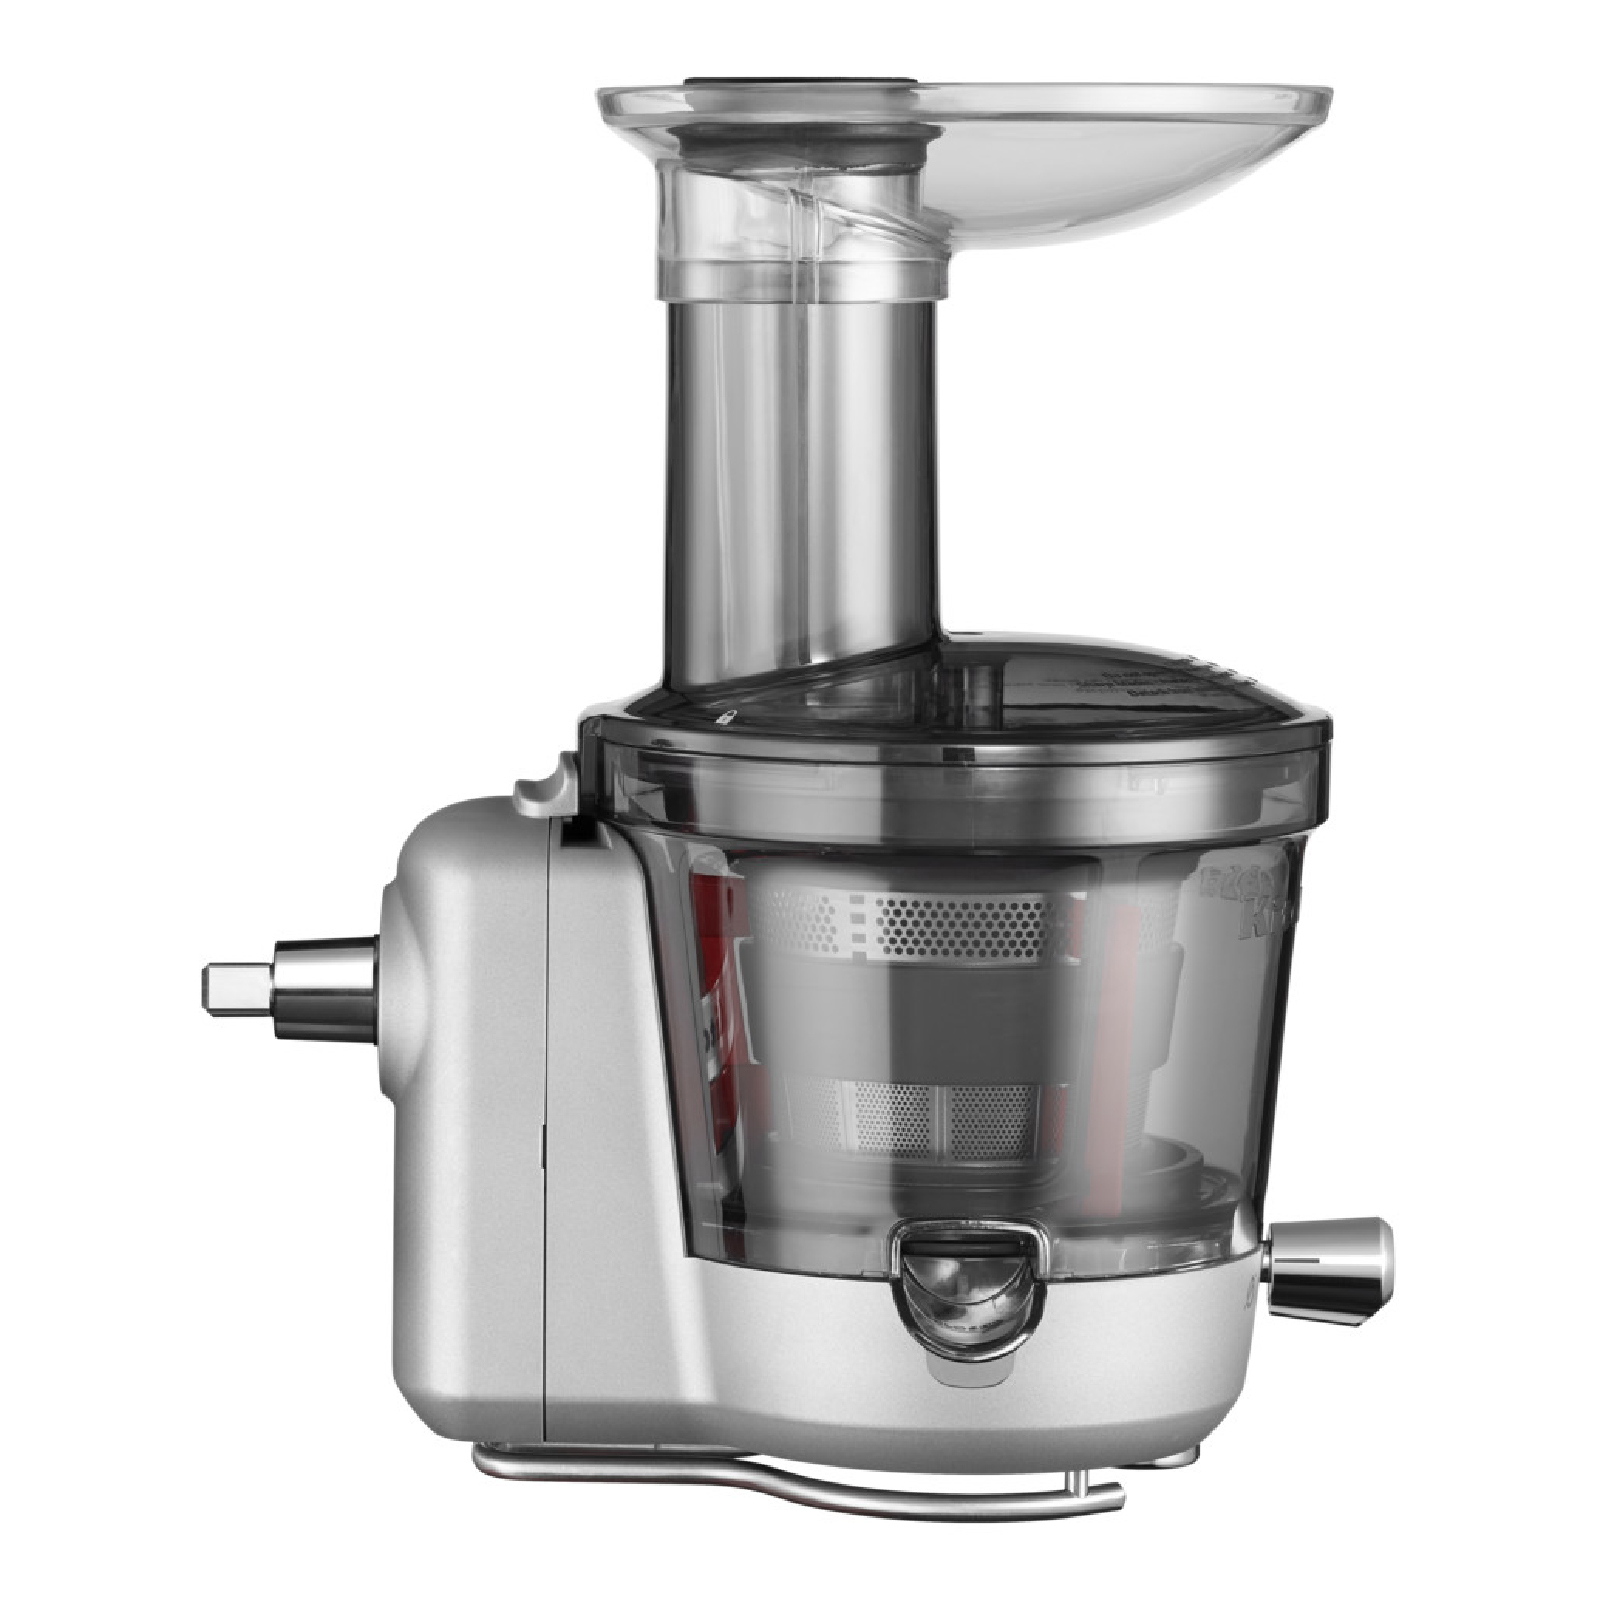 Maximum Extraction Slow Juicer And Sauce Attachment 5ksm1ja : KitchenAid 5KSM1JA Maximum Extraction Slow Juicer and ...